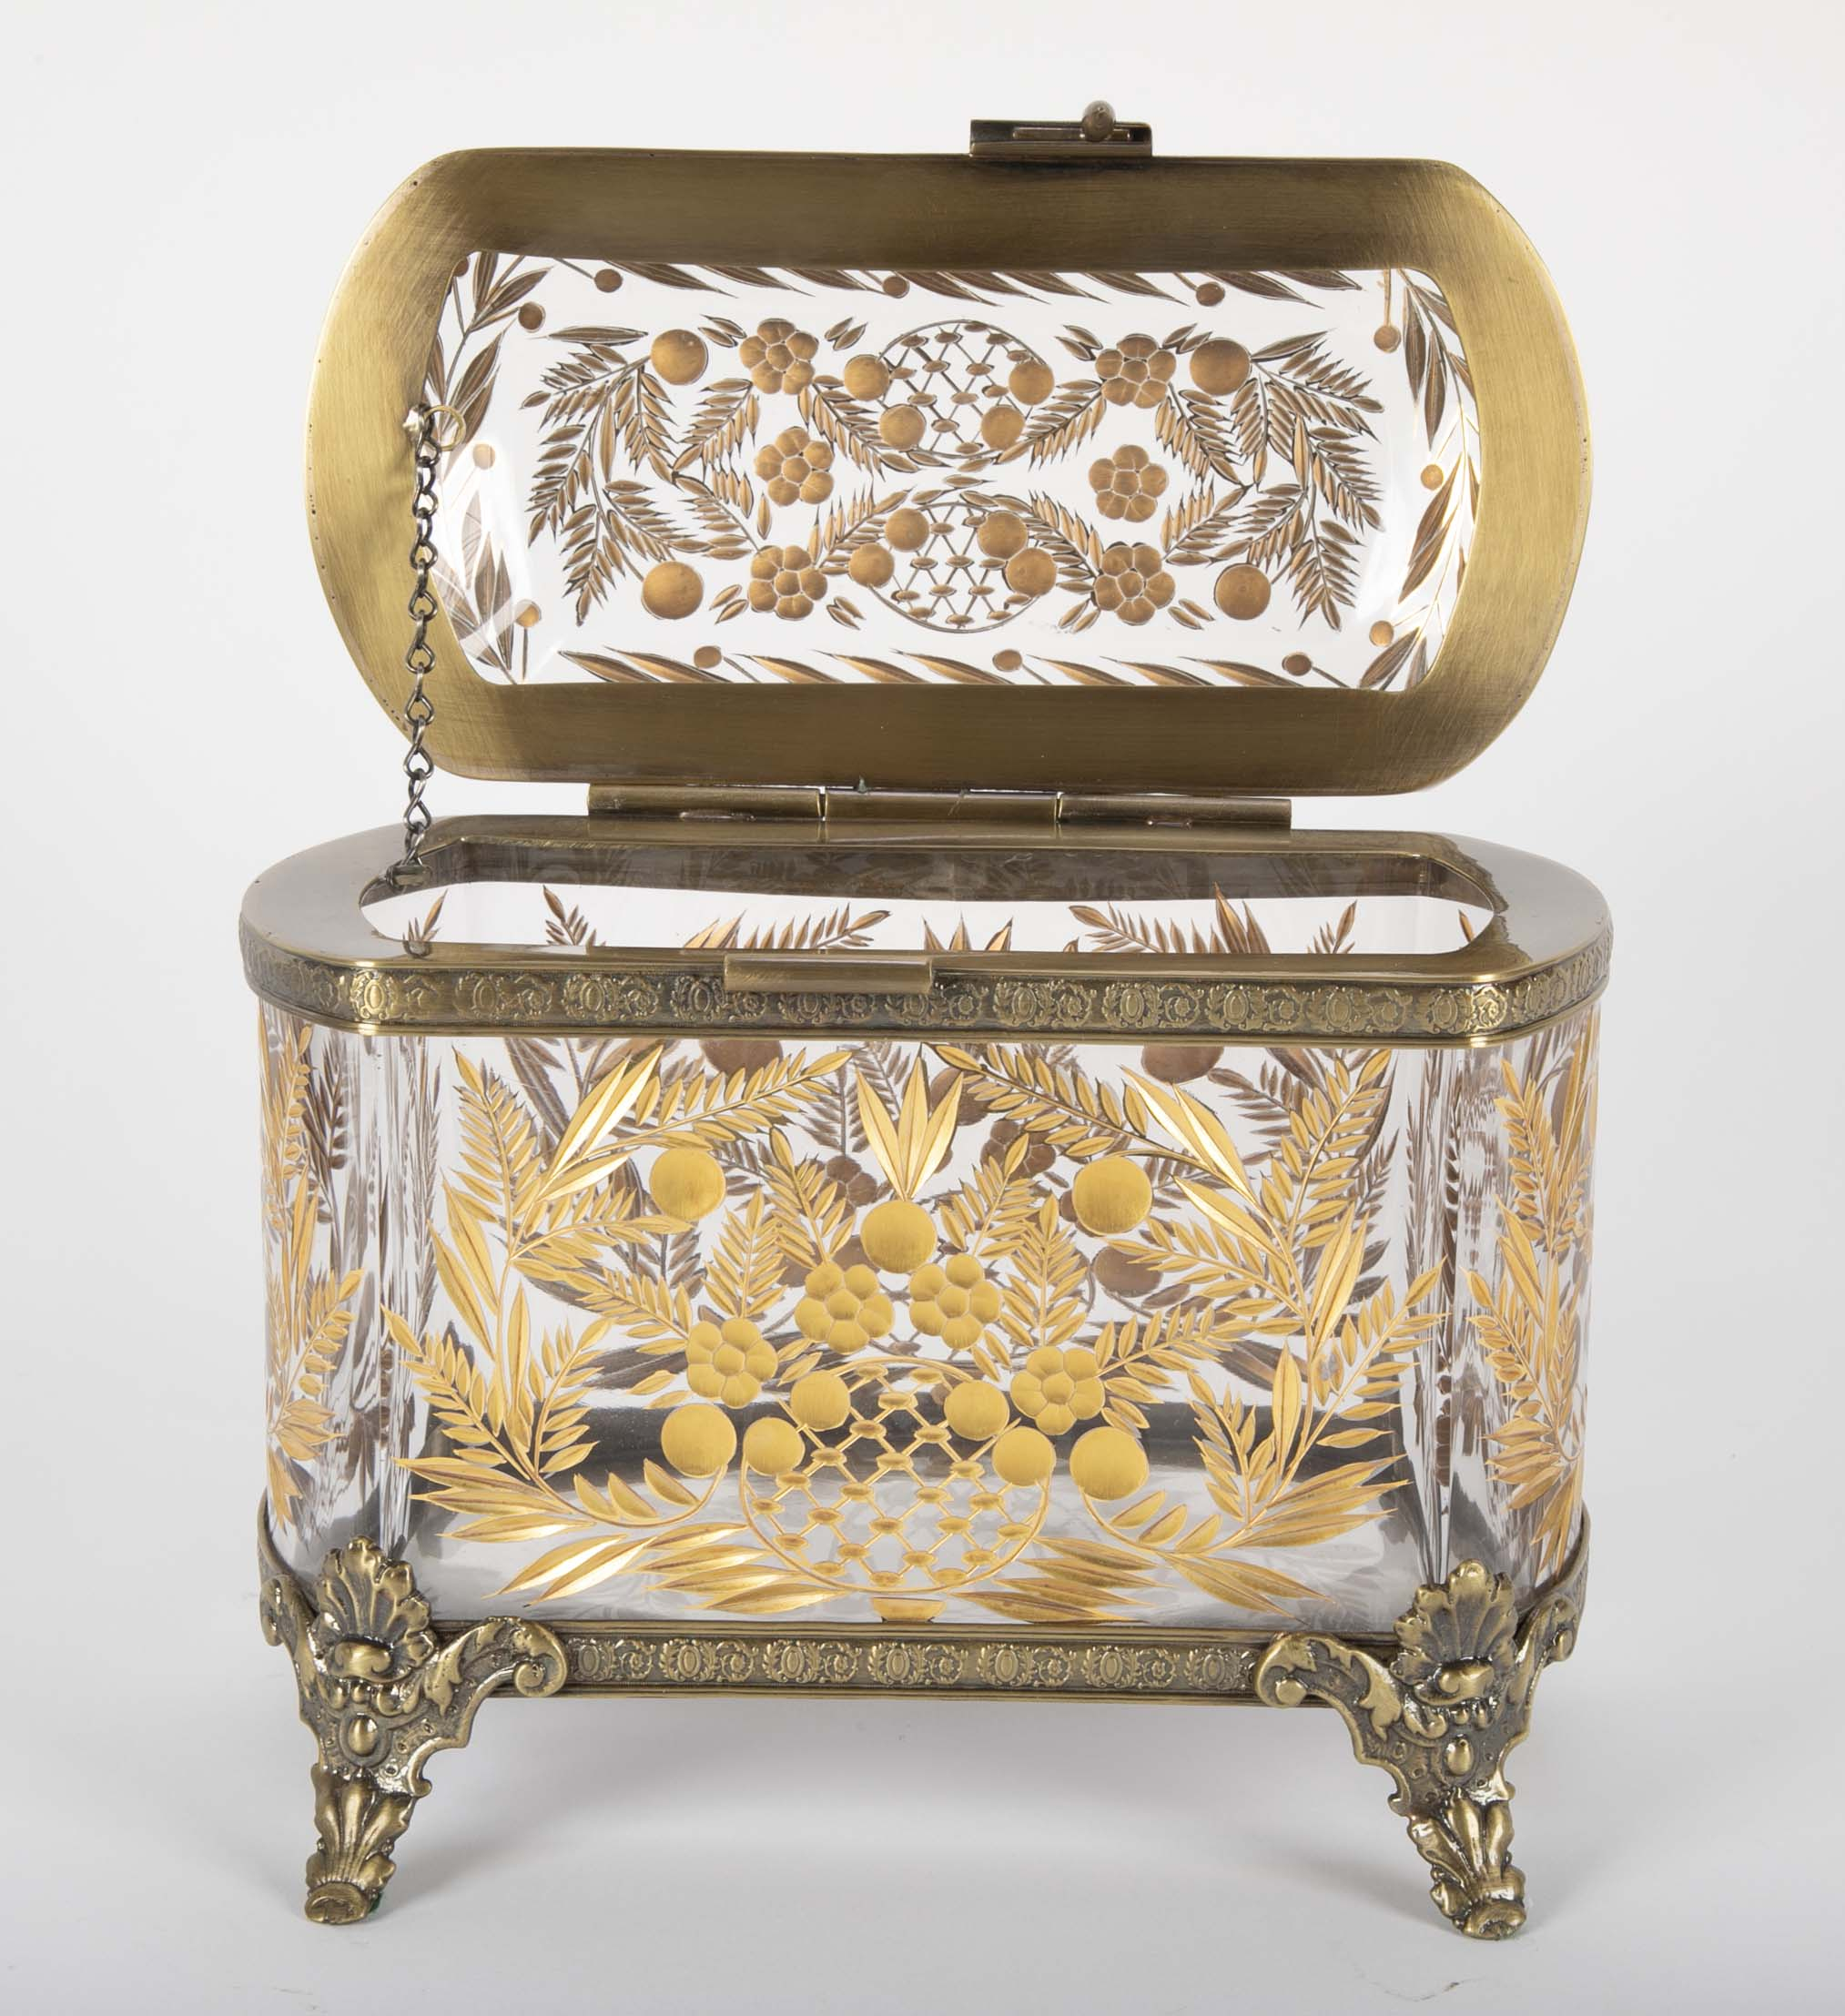 Bohemian Cut Crystal Box with 24 Carat Gilding & Bronze Mounts